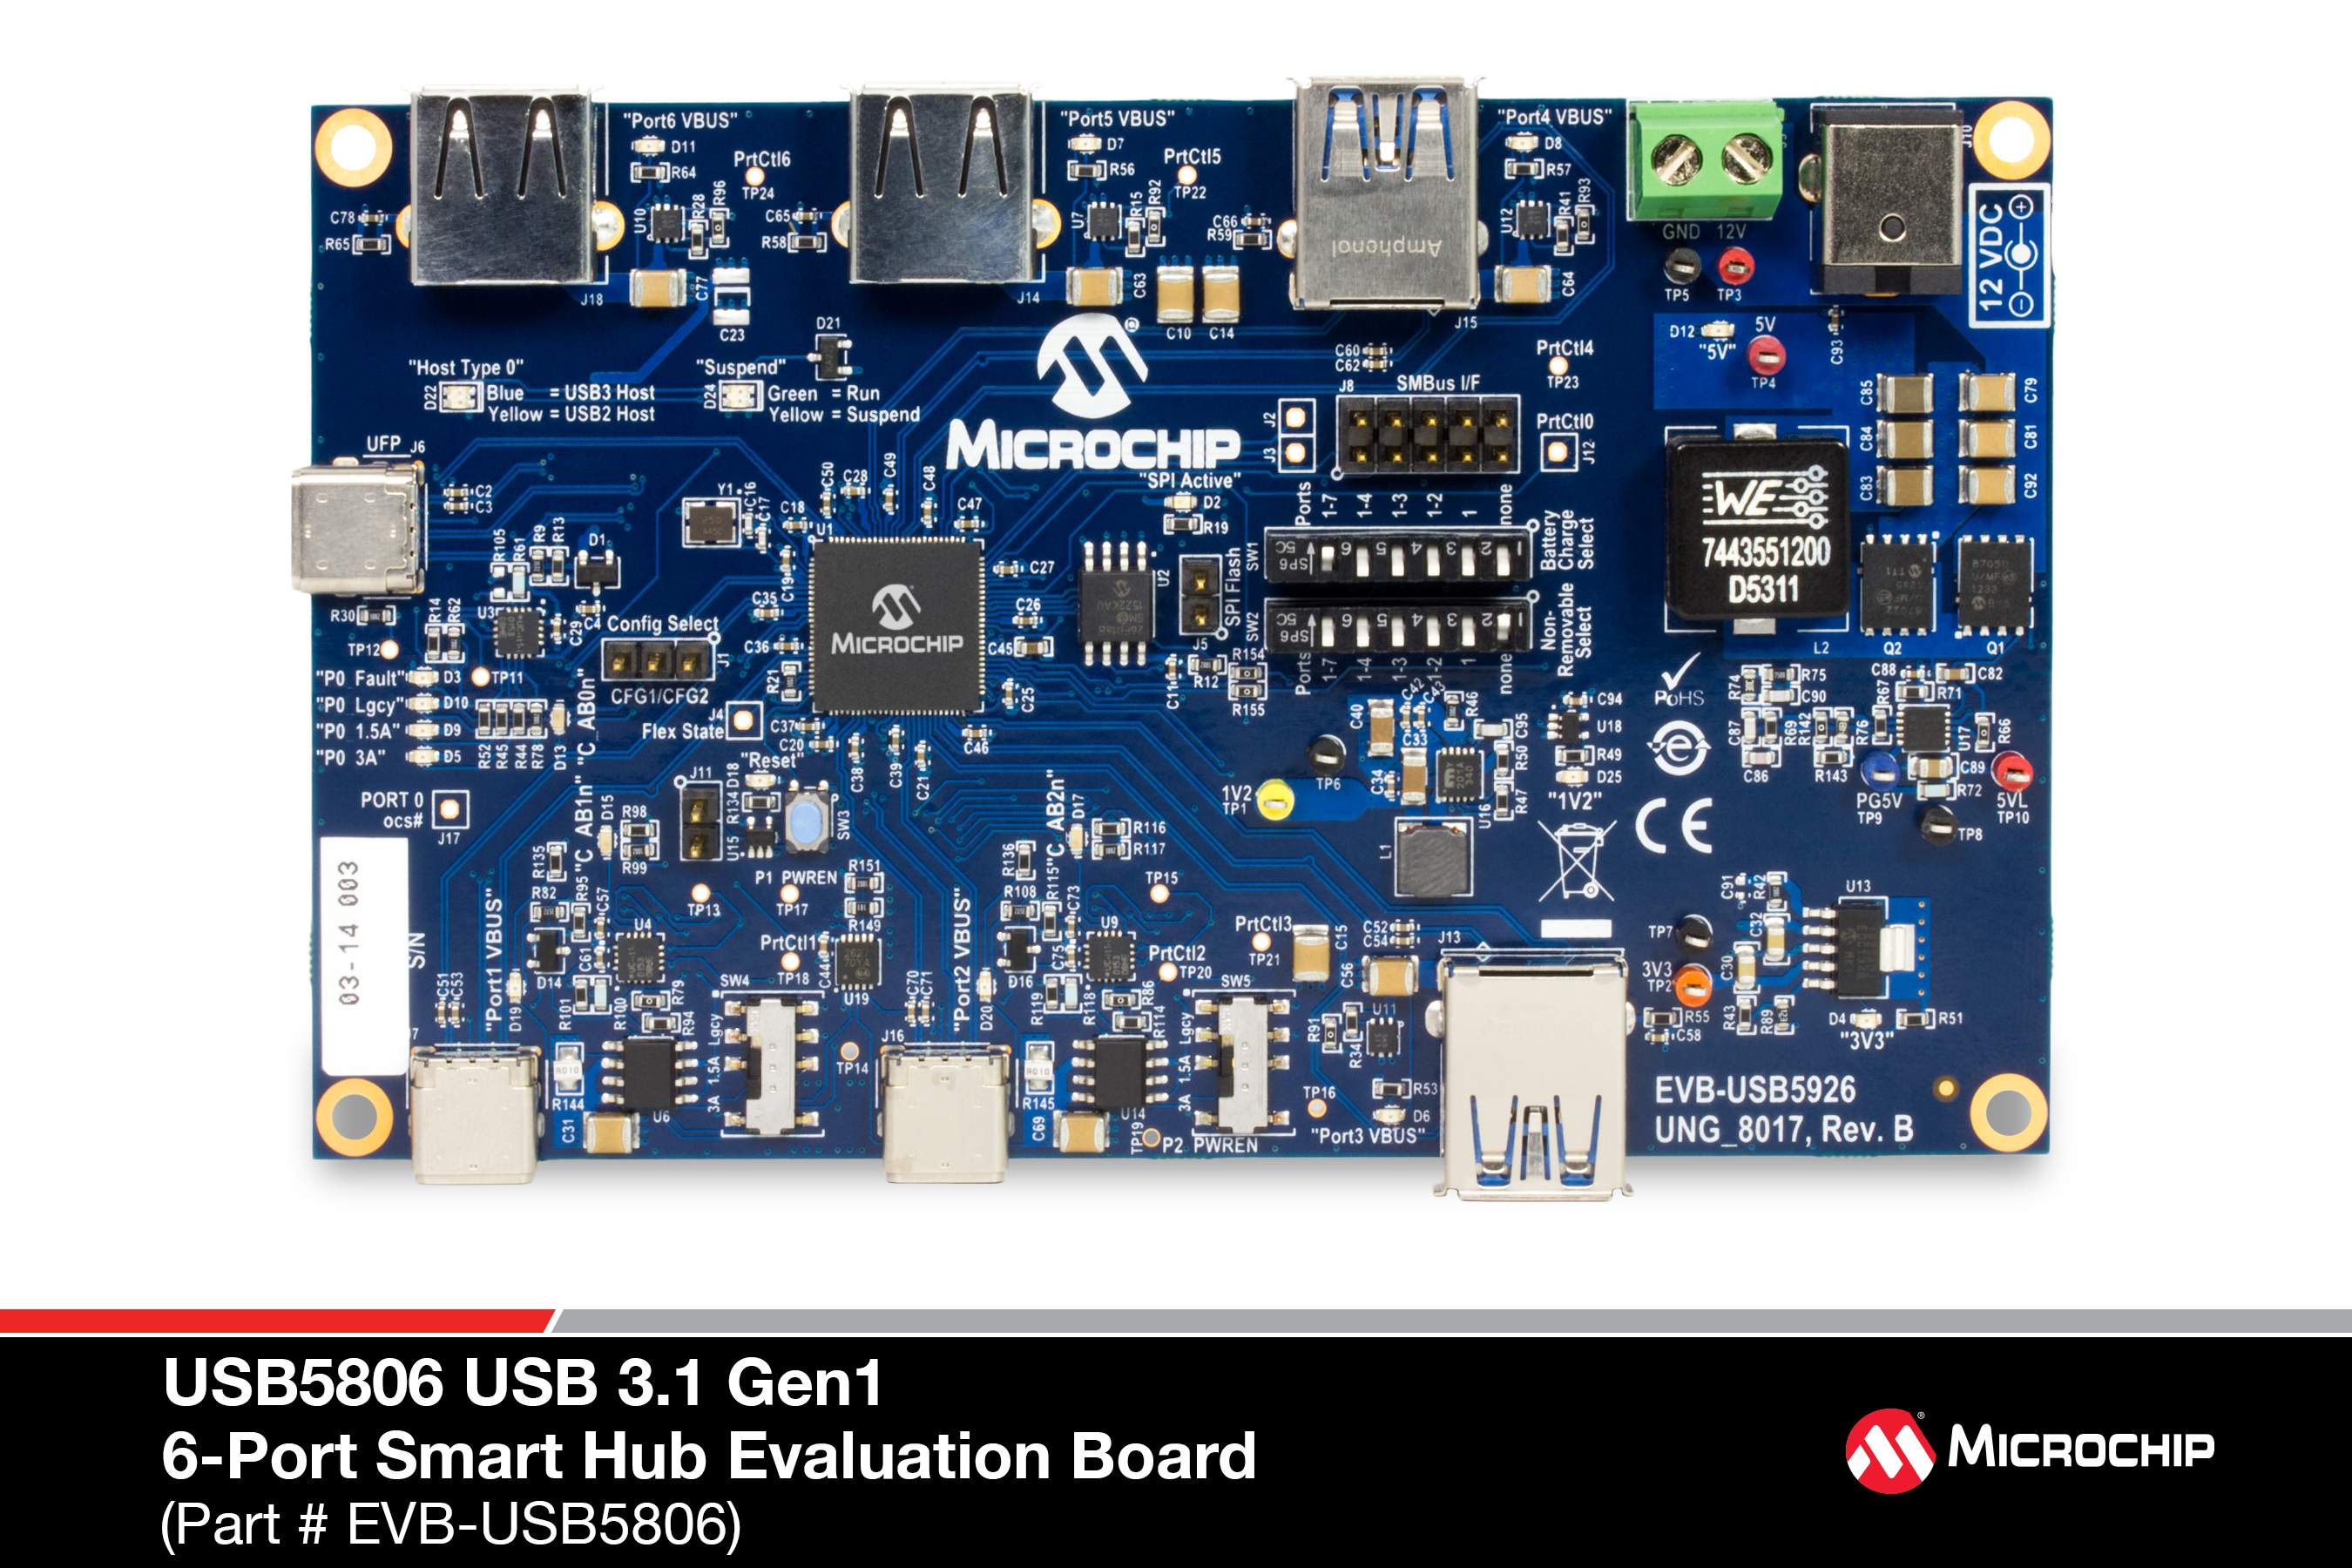 Development Tools Wii Component Cable Schematic Necessary Requirements And Interface Options For Evaluating The Usb5806a 6 Port Ss Hs Usb Smart Hub On A 4 Layer Rohs Compliant Printed Circuit Board